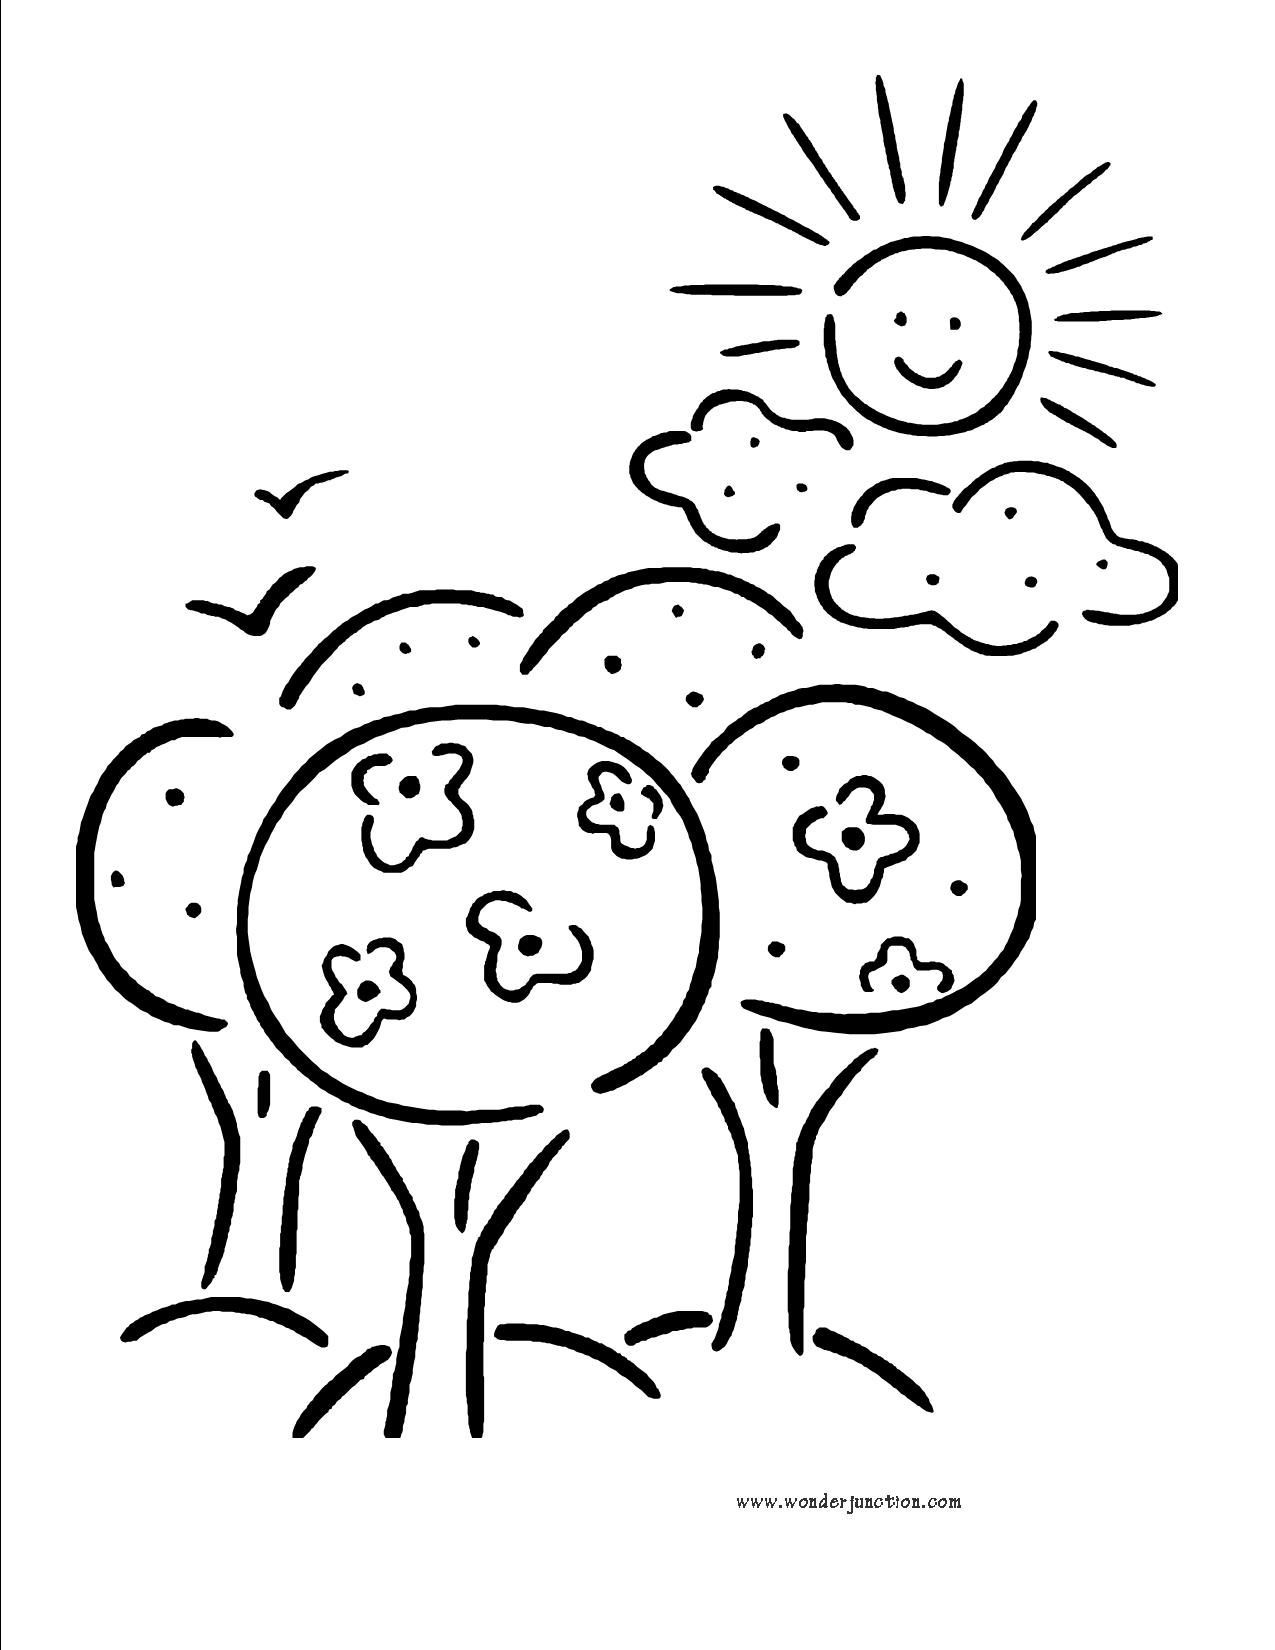 Sunny Day Clipart Black And White